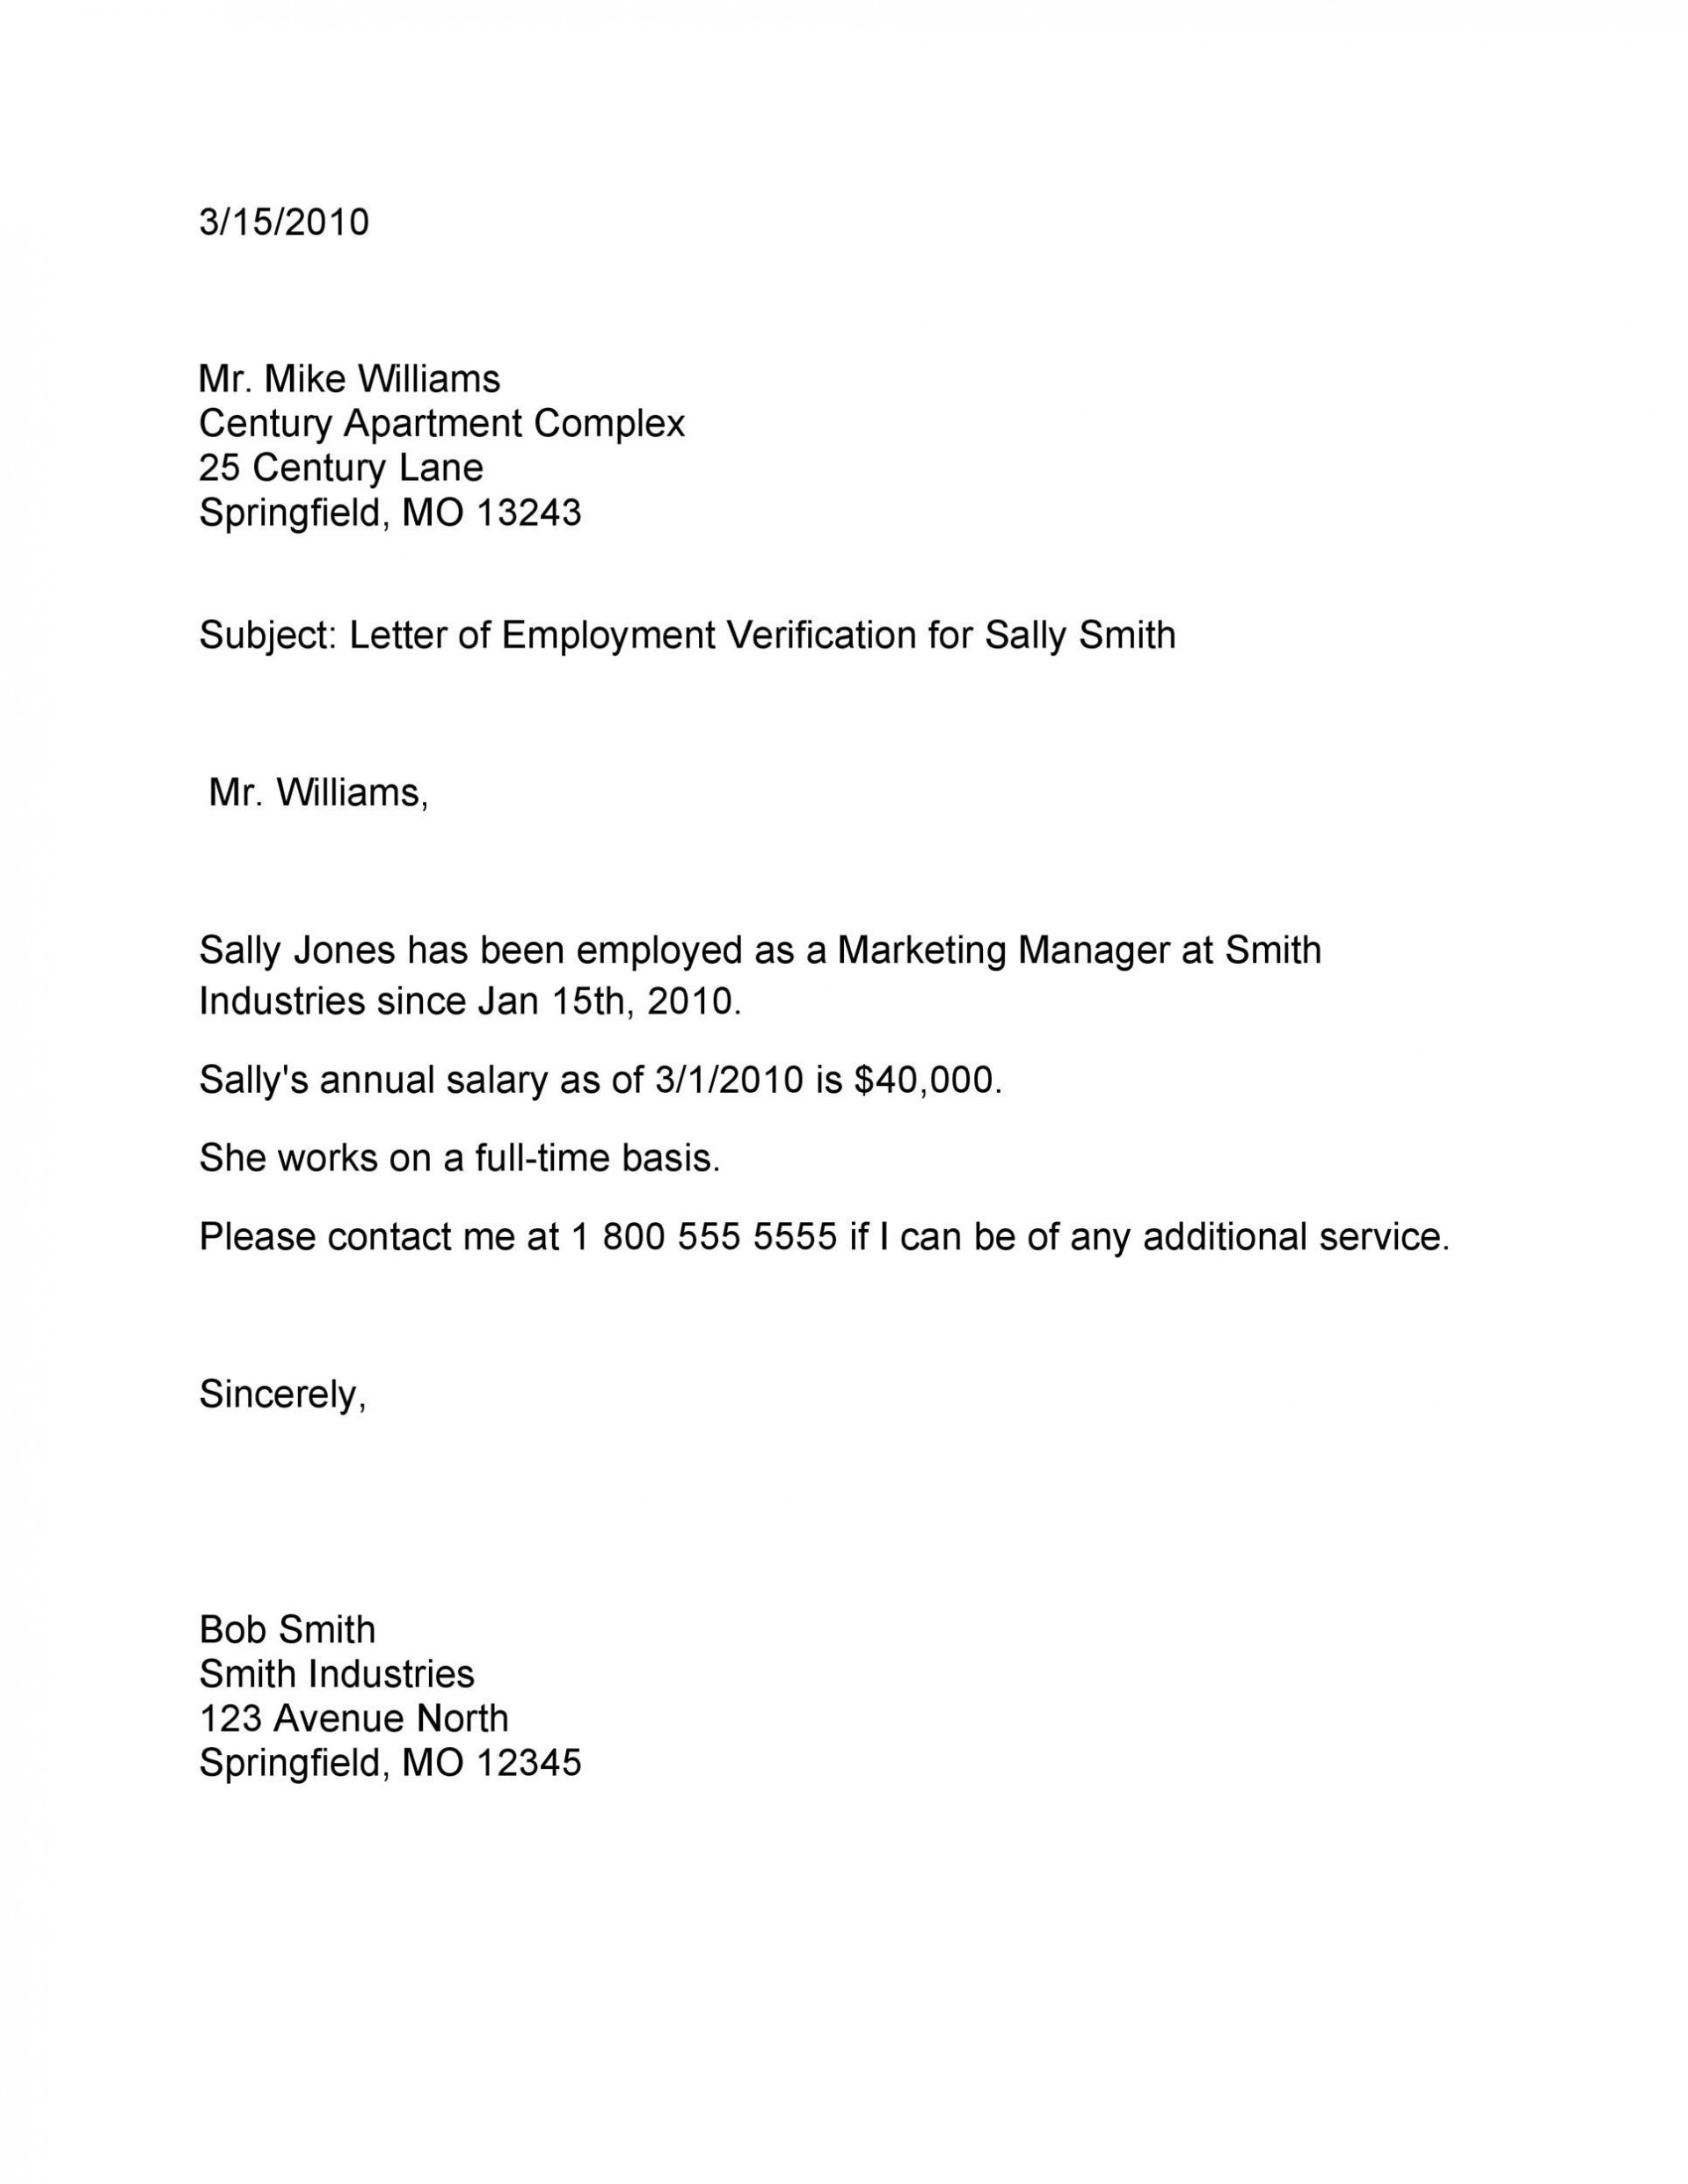 003 Unforgettable Employment Verification Letter Template Word Photo  South Africa1920